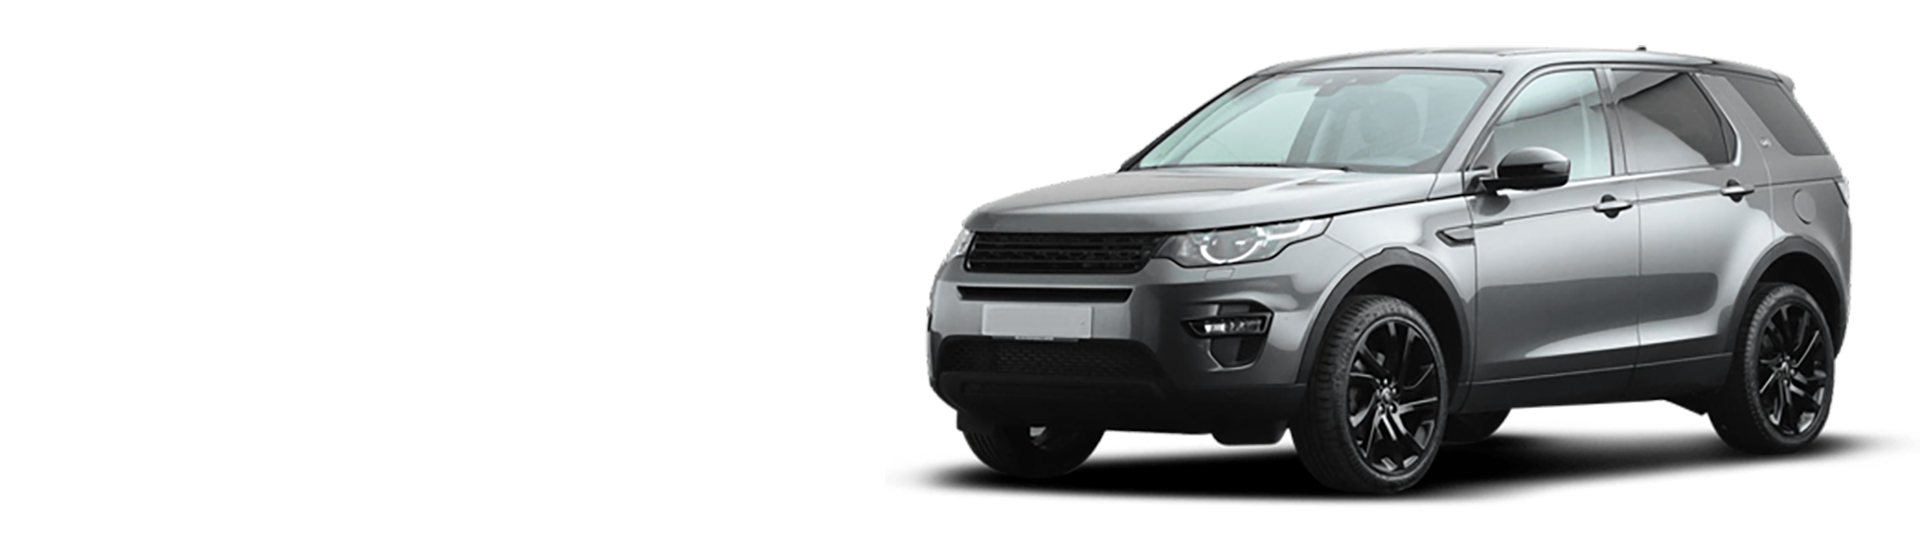 Range Rover Services in Willow Glen